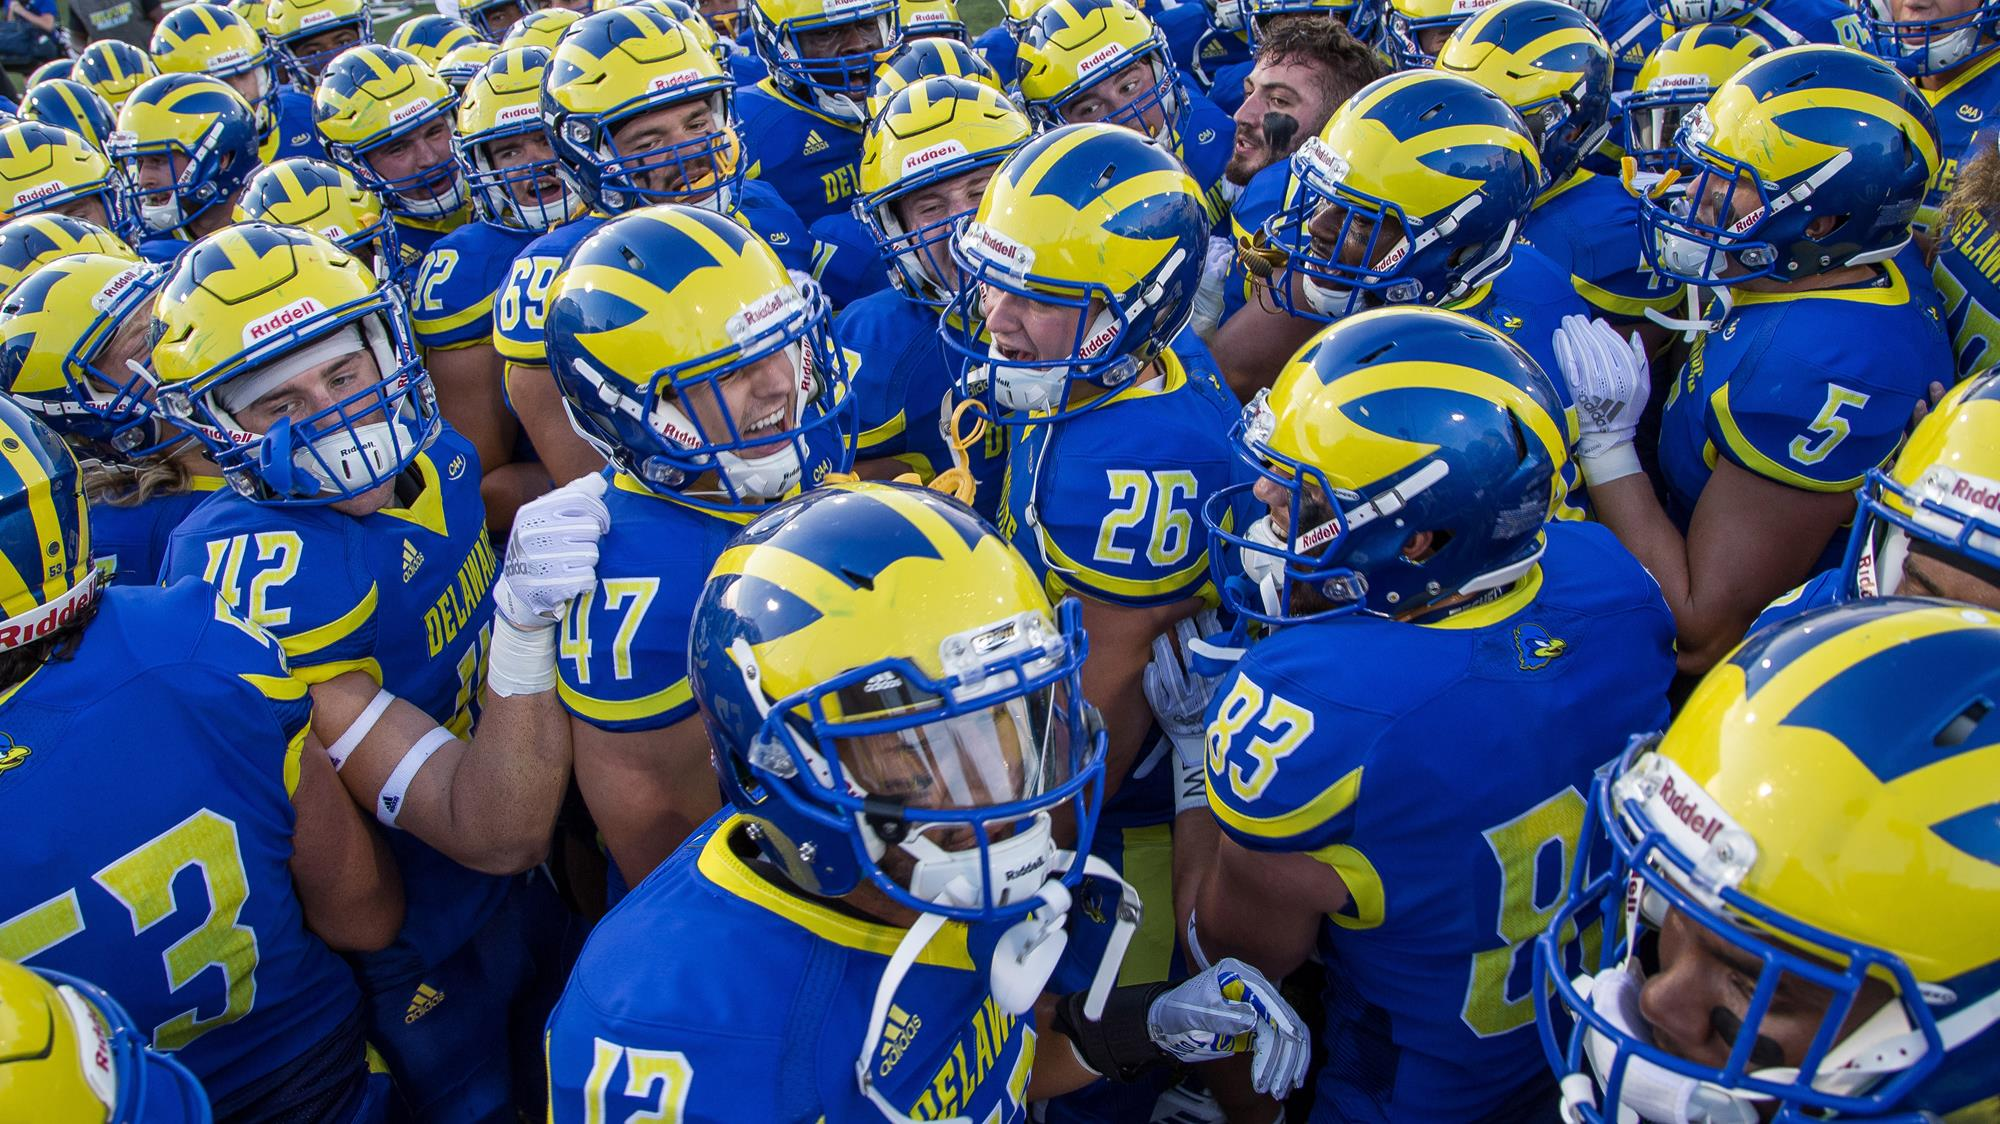 Blue Hens to Take on Rutgers in 2021